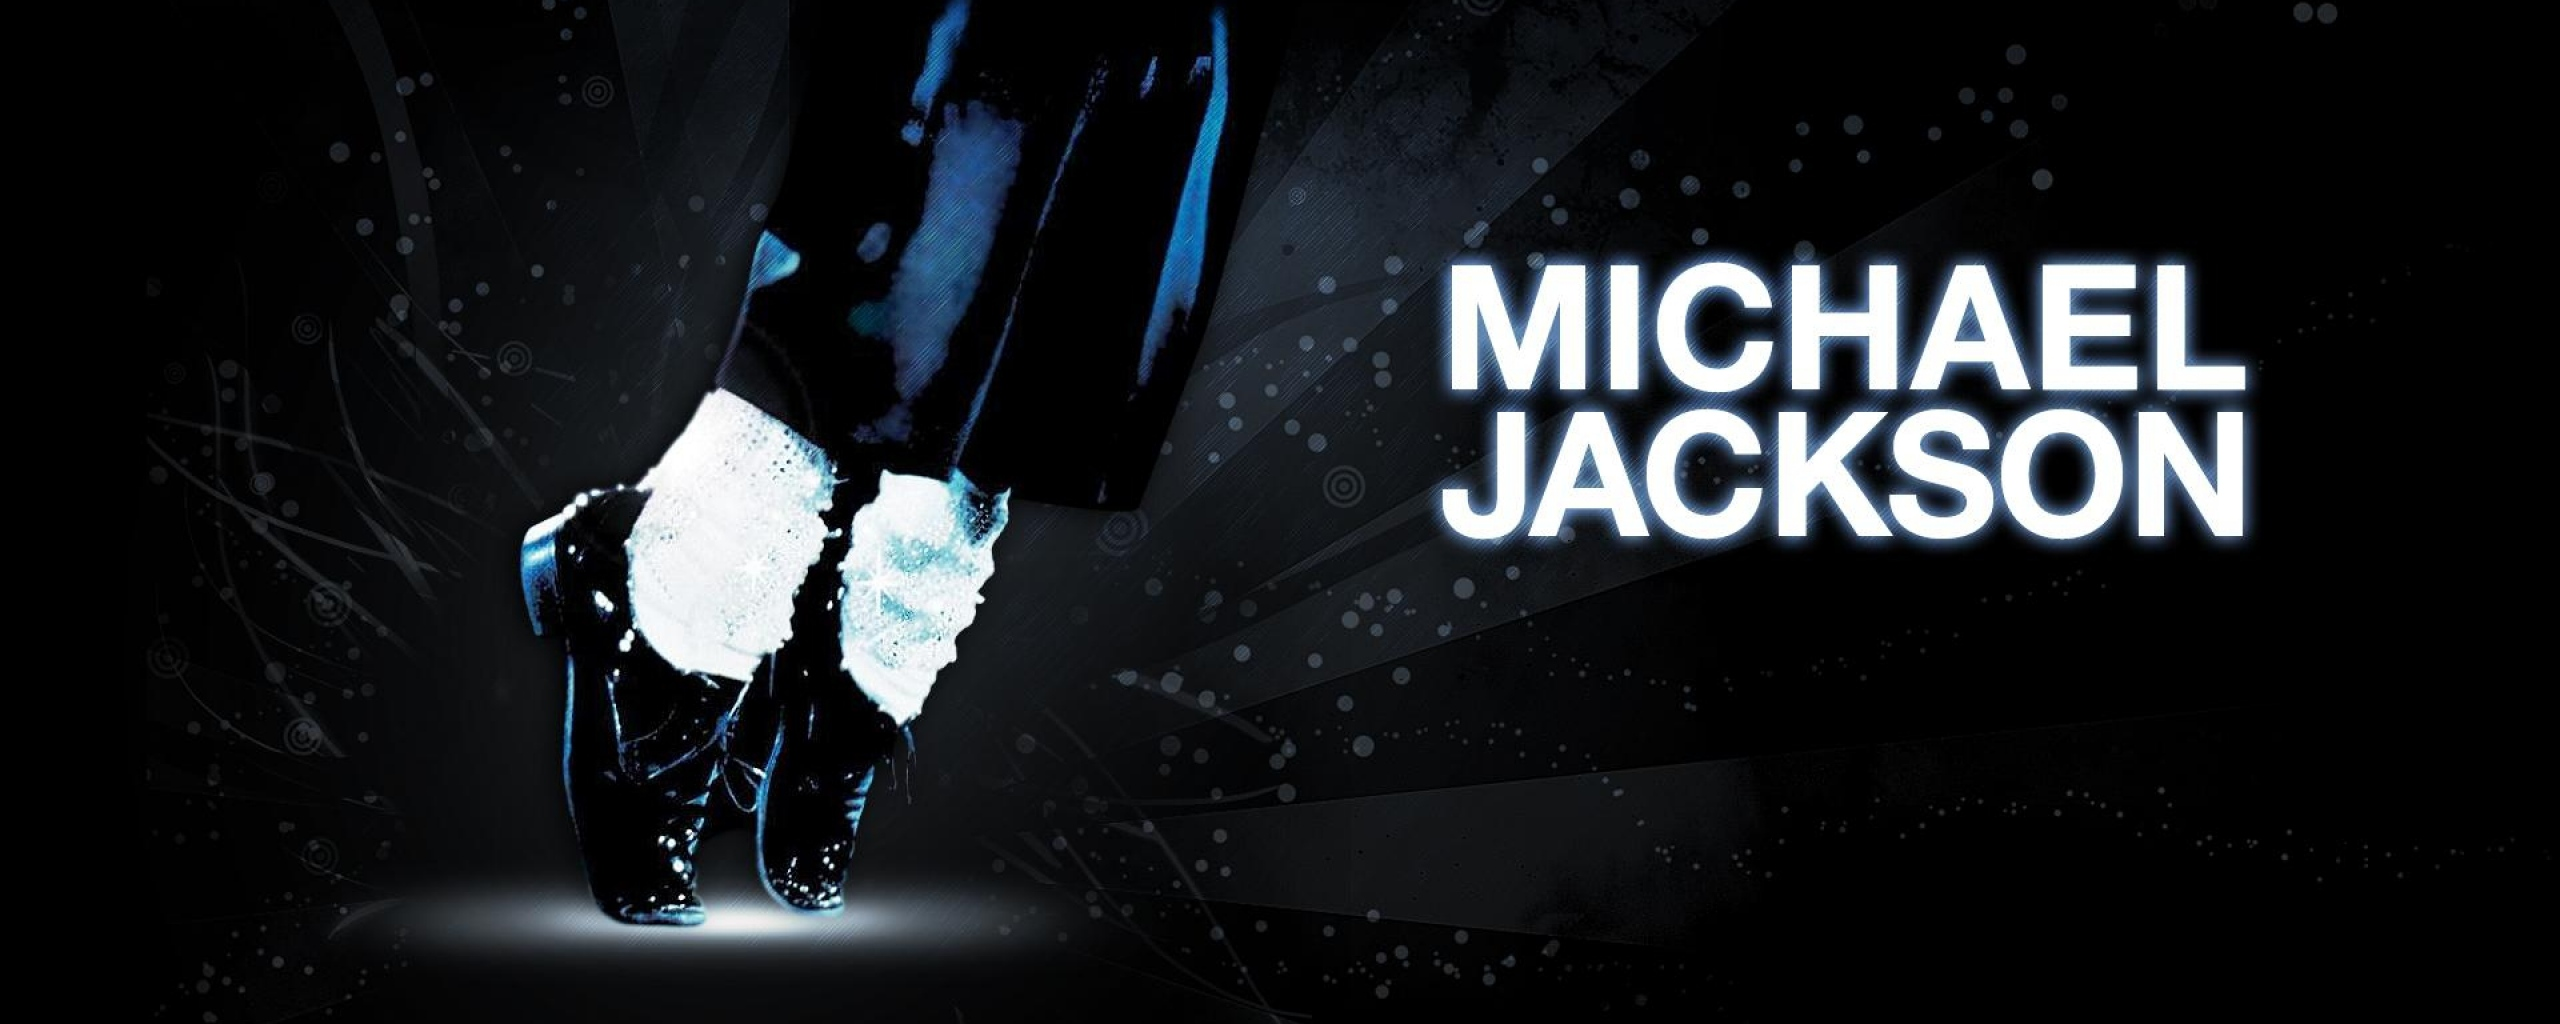 Michael Jackson Wallpapers HD shoes